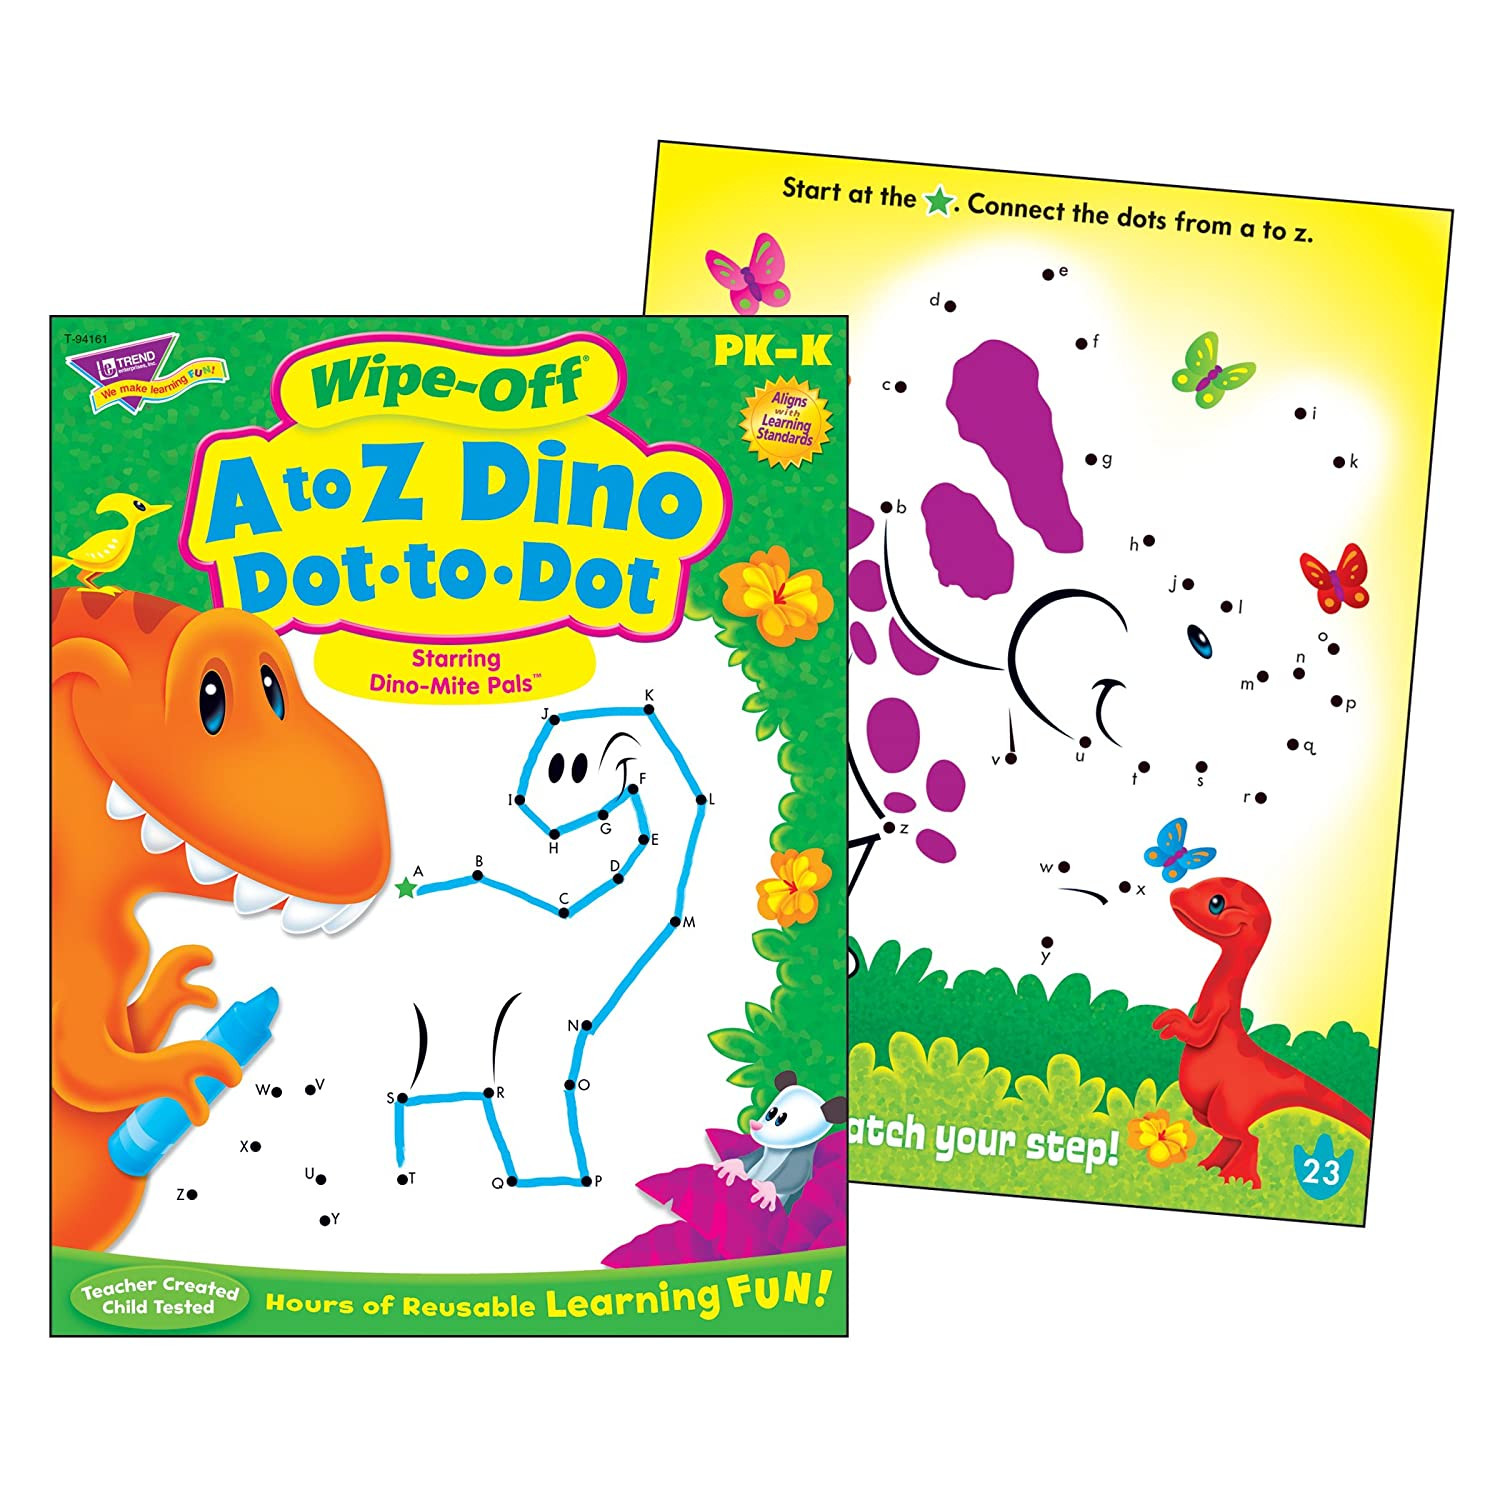 TREND enterprises Inc 28 pg T-94161 A to Z Dino Dot-to-Dot Dino-Mite Pals Wipe-Off Book